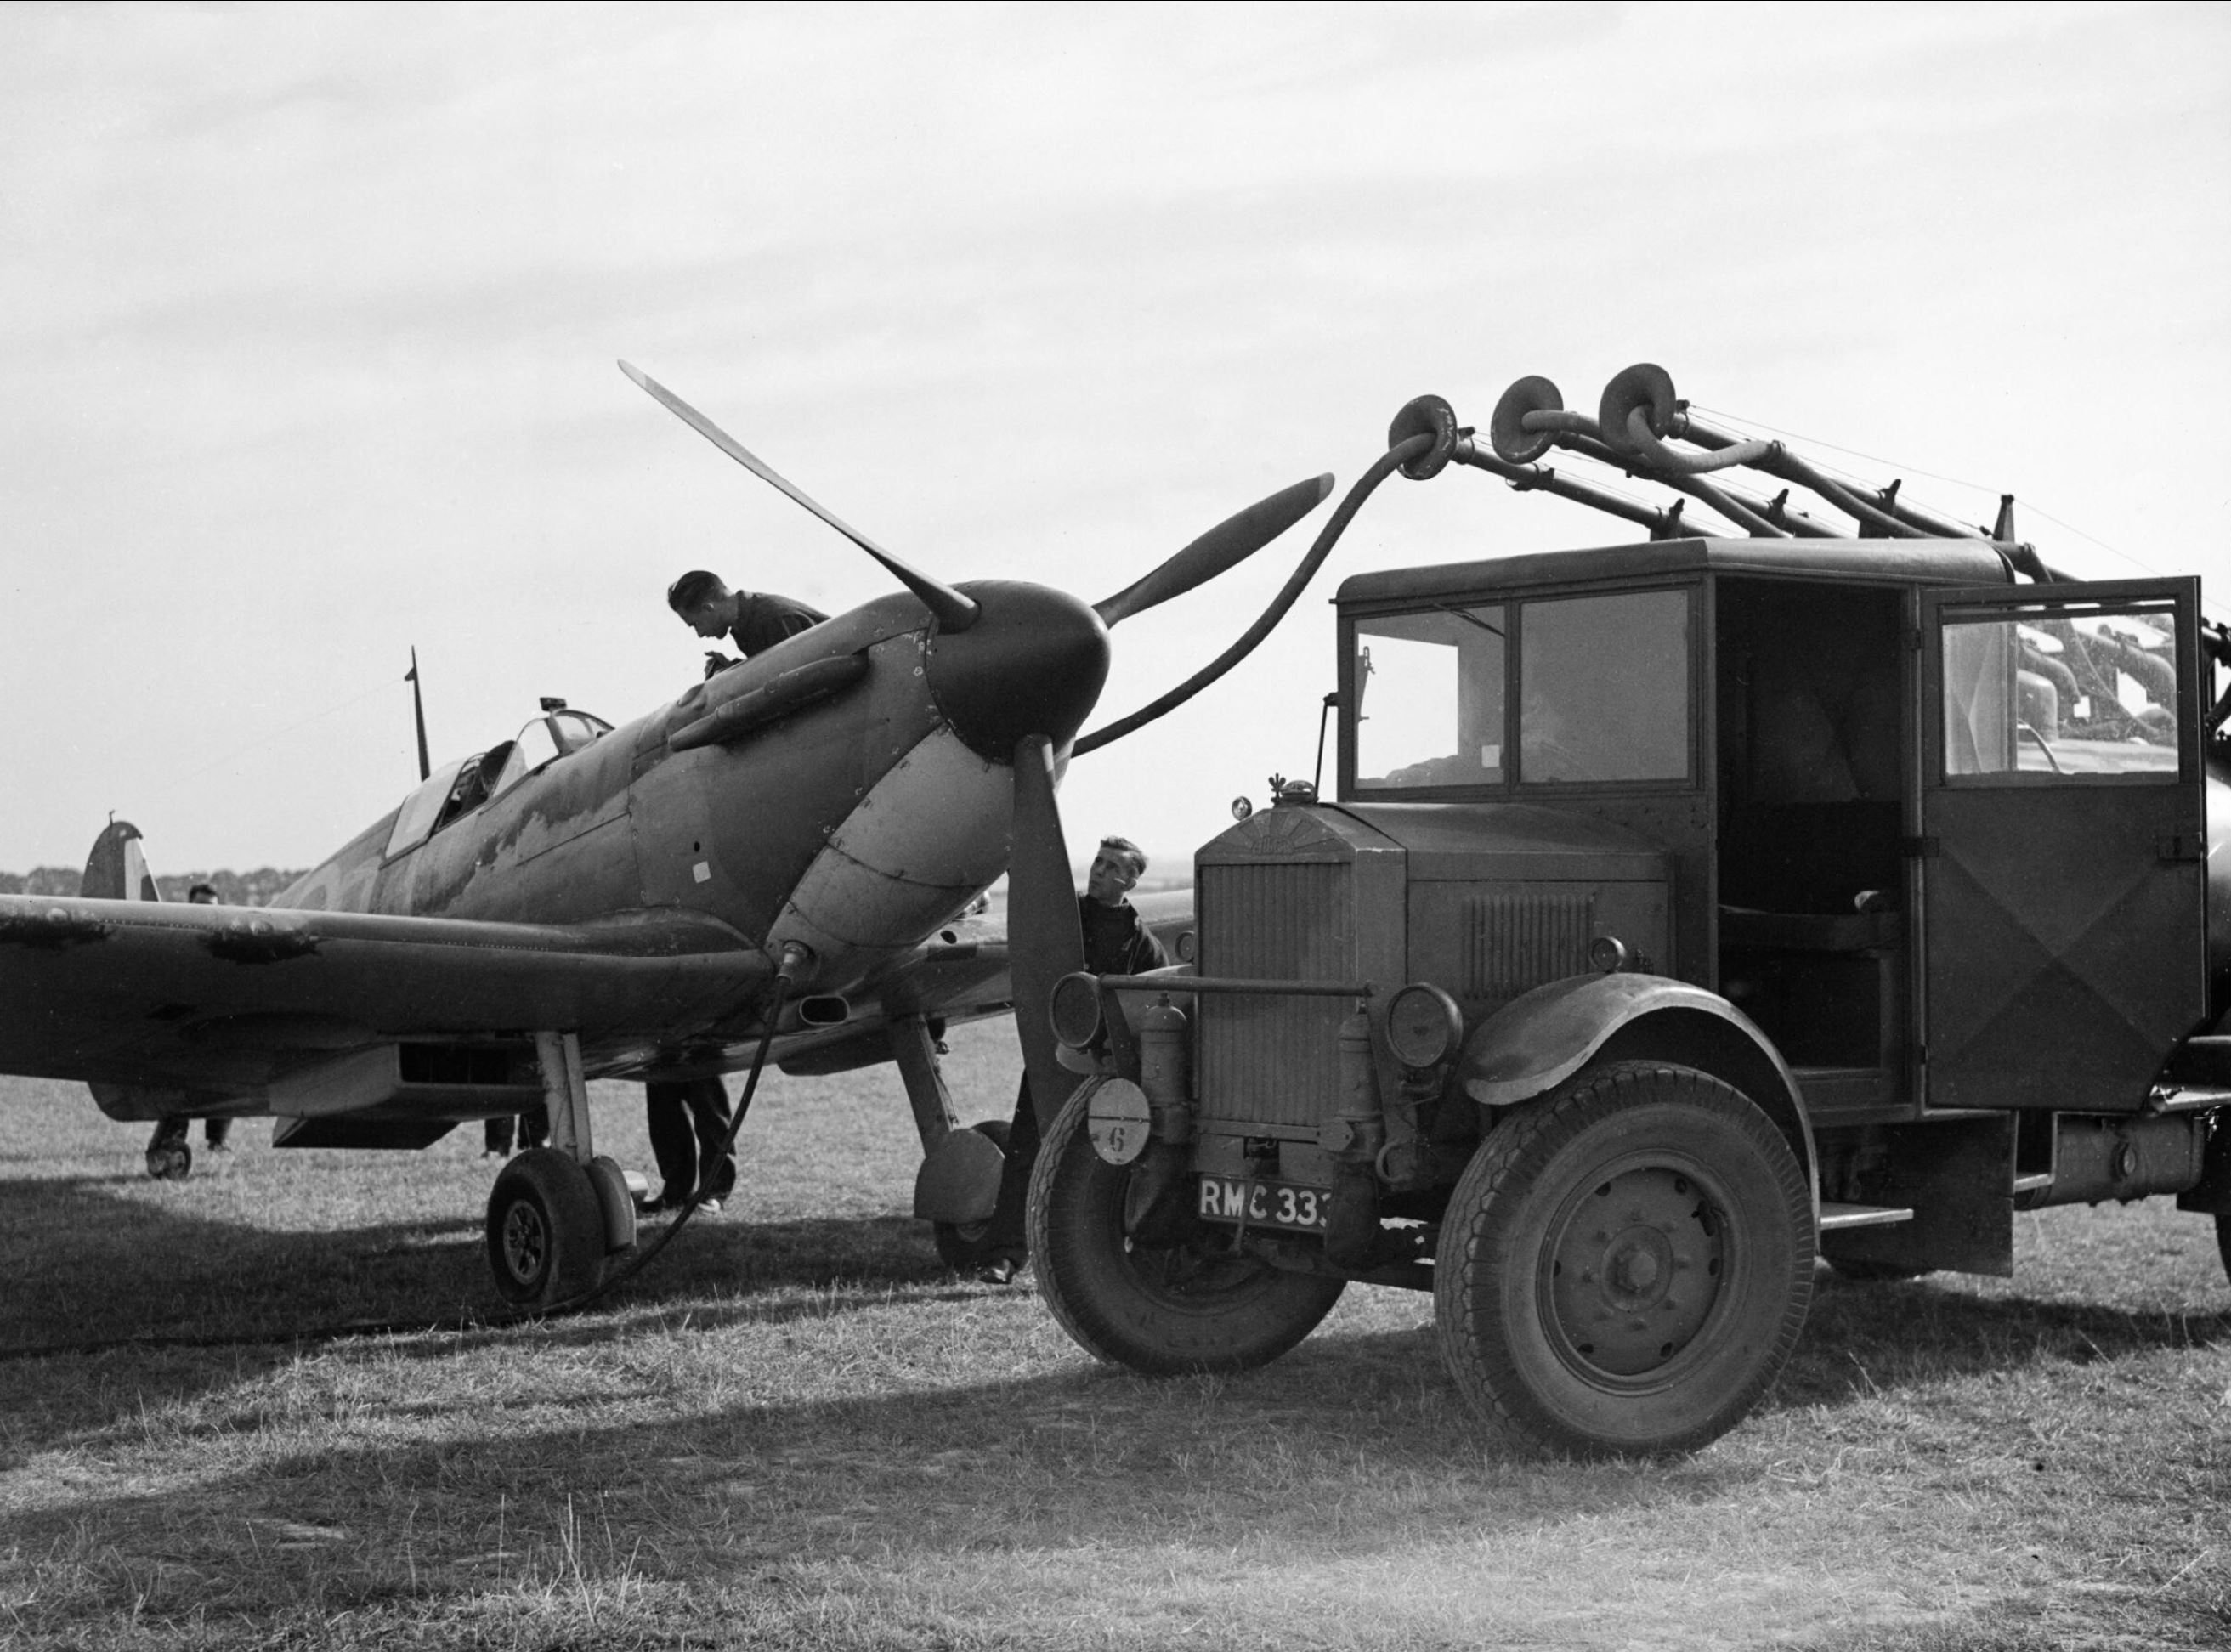 Spitfire MkIa RAF 19Sqn being refueled at Fowlmere during the Battle of Britain Sep 1940 IWM HU1372